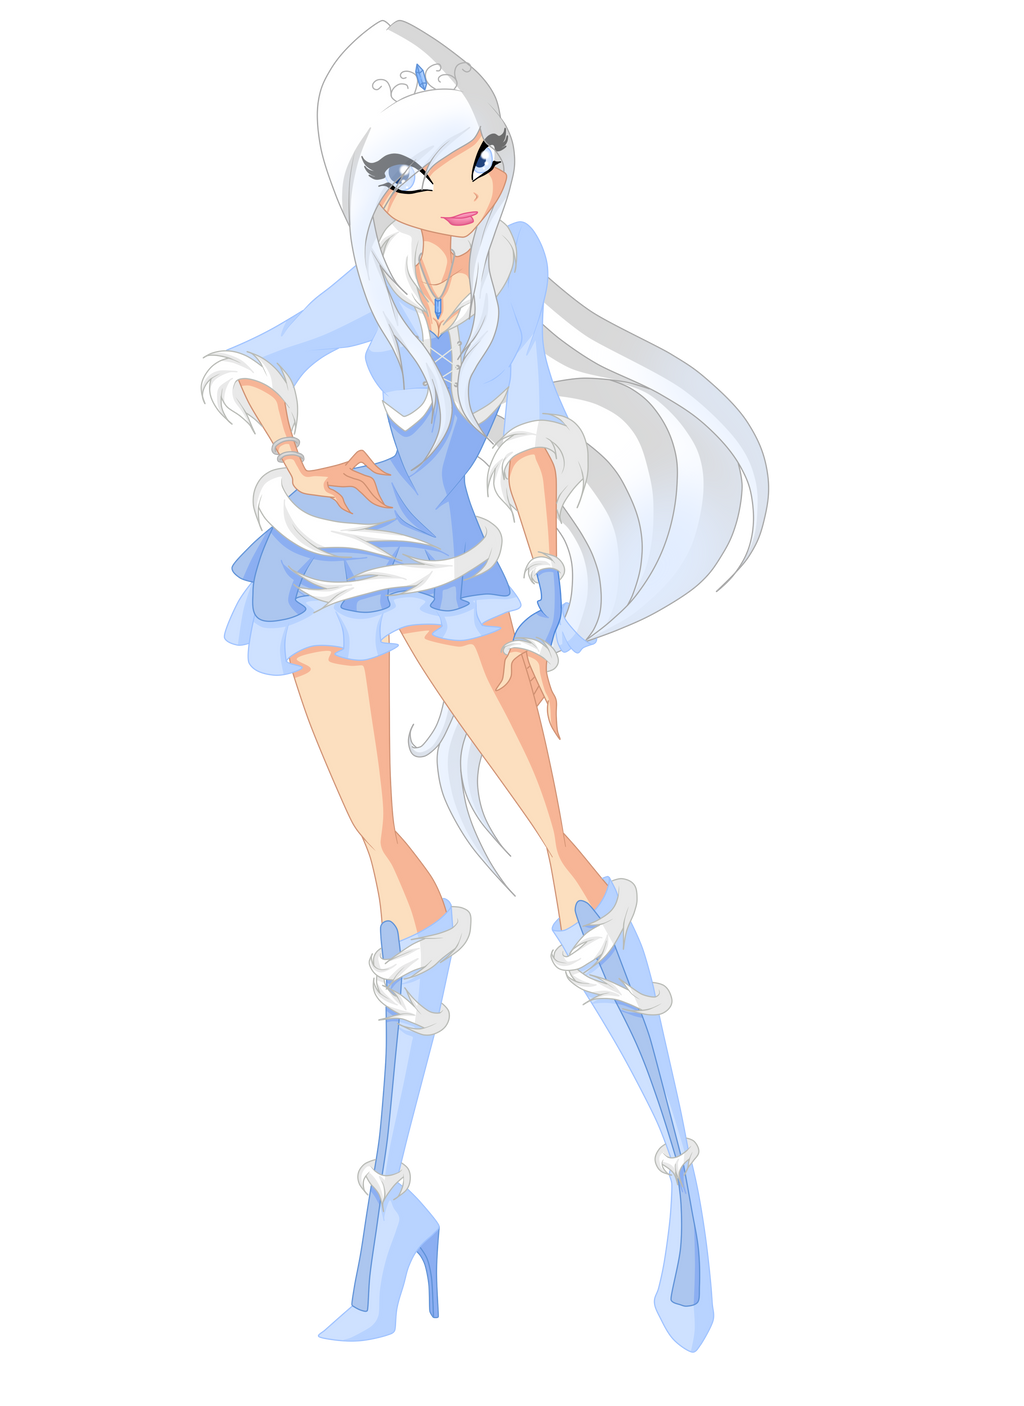 New Winx Oc: Yuki Frost (Season 1) by xXDiamondStarXx